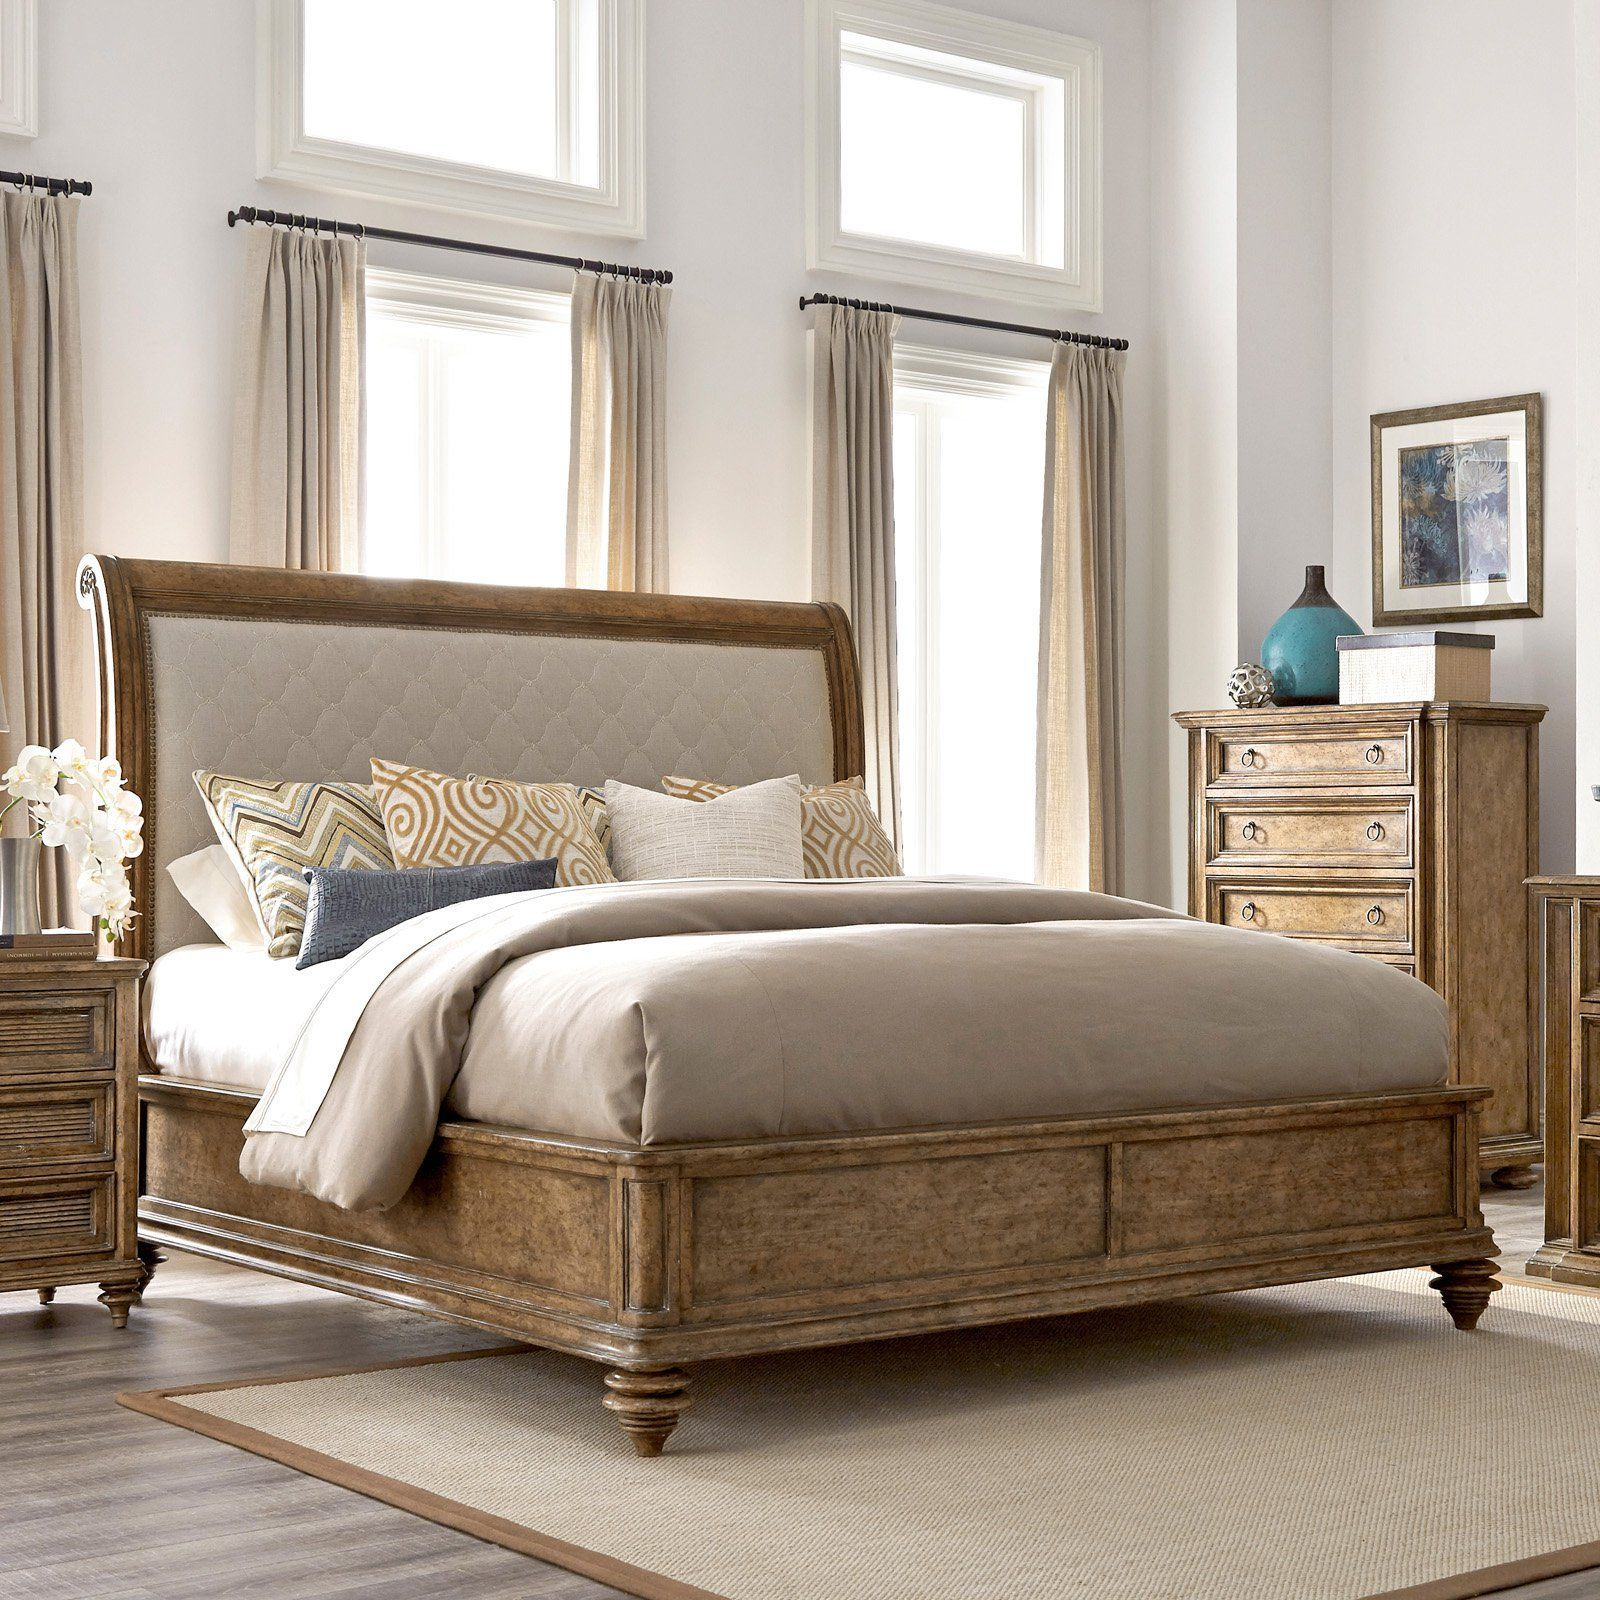 A.R.T. Furniture Pavilion Upholstered Sleigh Bed from